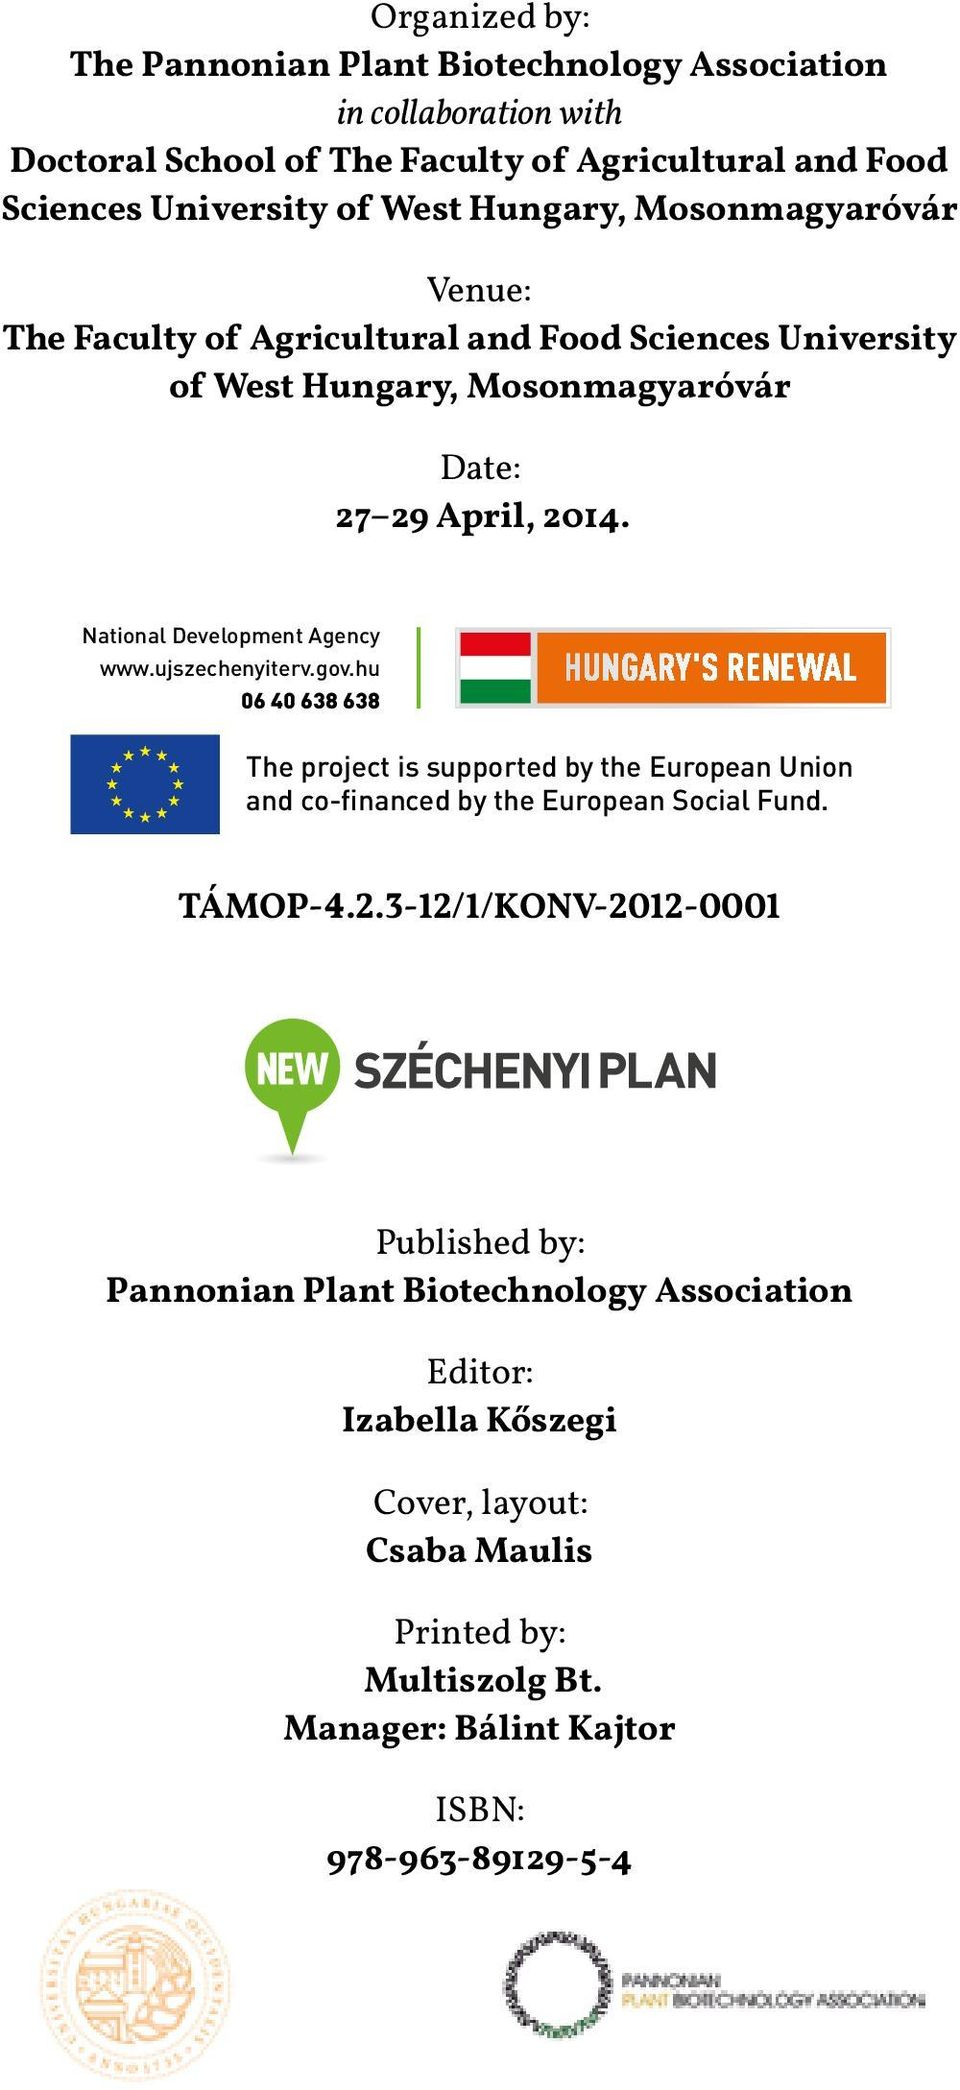 National Development Agency www.ujszechenyiterv.gov.hu 06 40 638 638 The project is supported by the European Union and co-financed by the European Social Fund. TÁMOP-4.2.